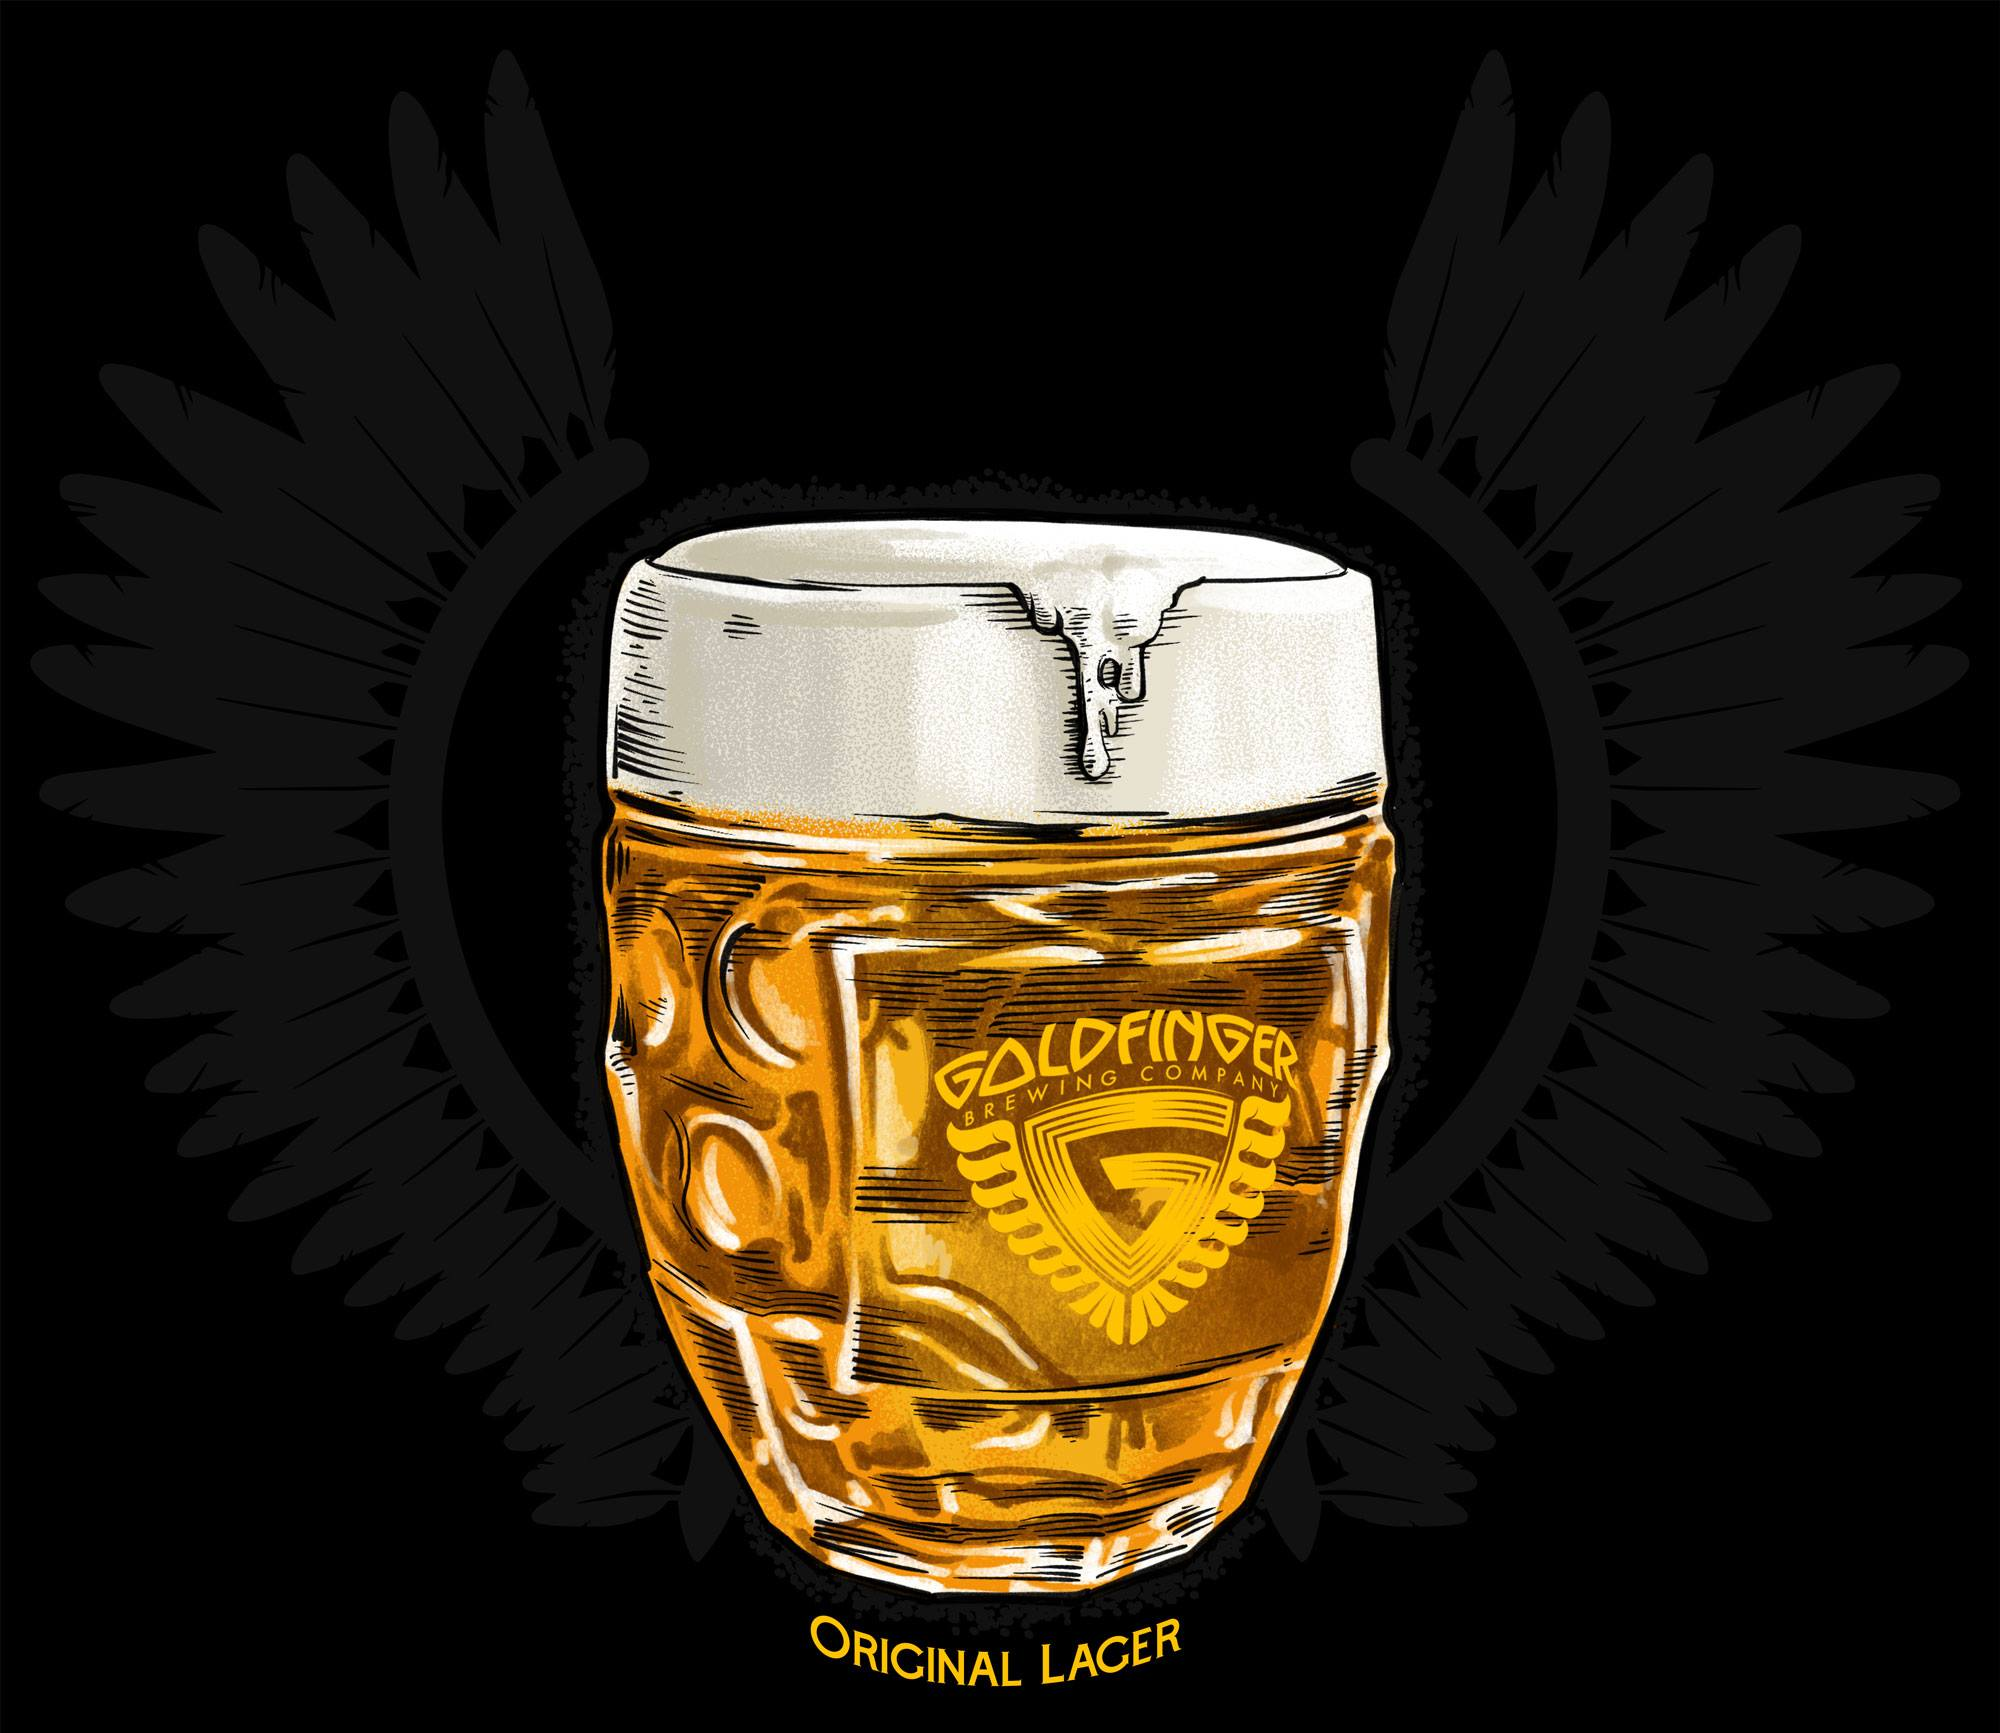 Drawing - Goldfinger Original Lager in a glass